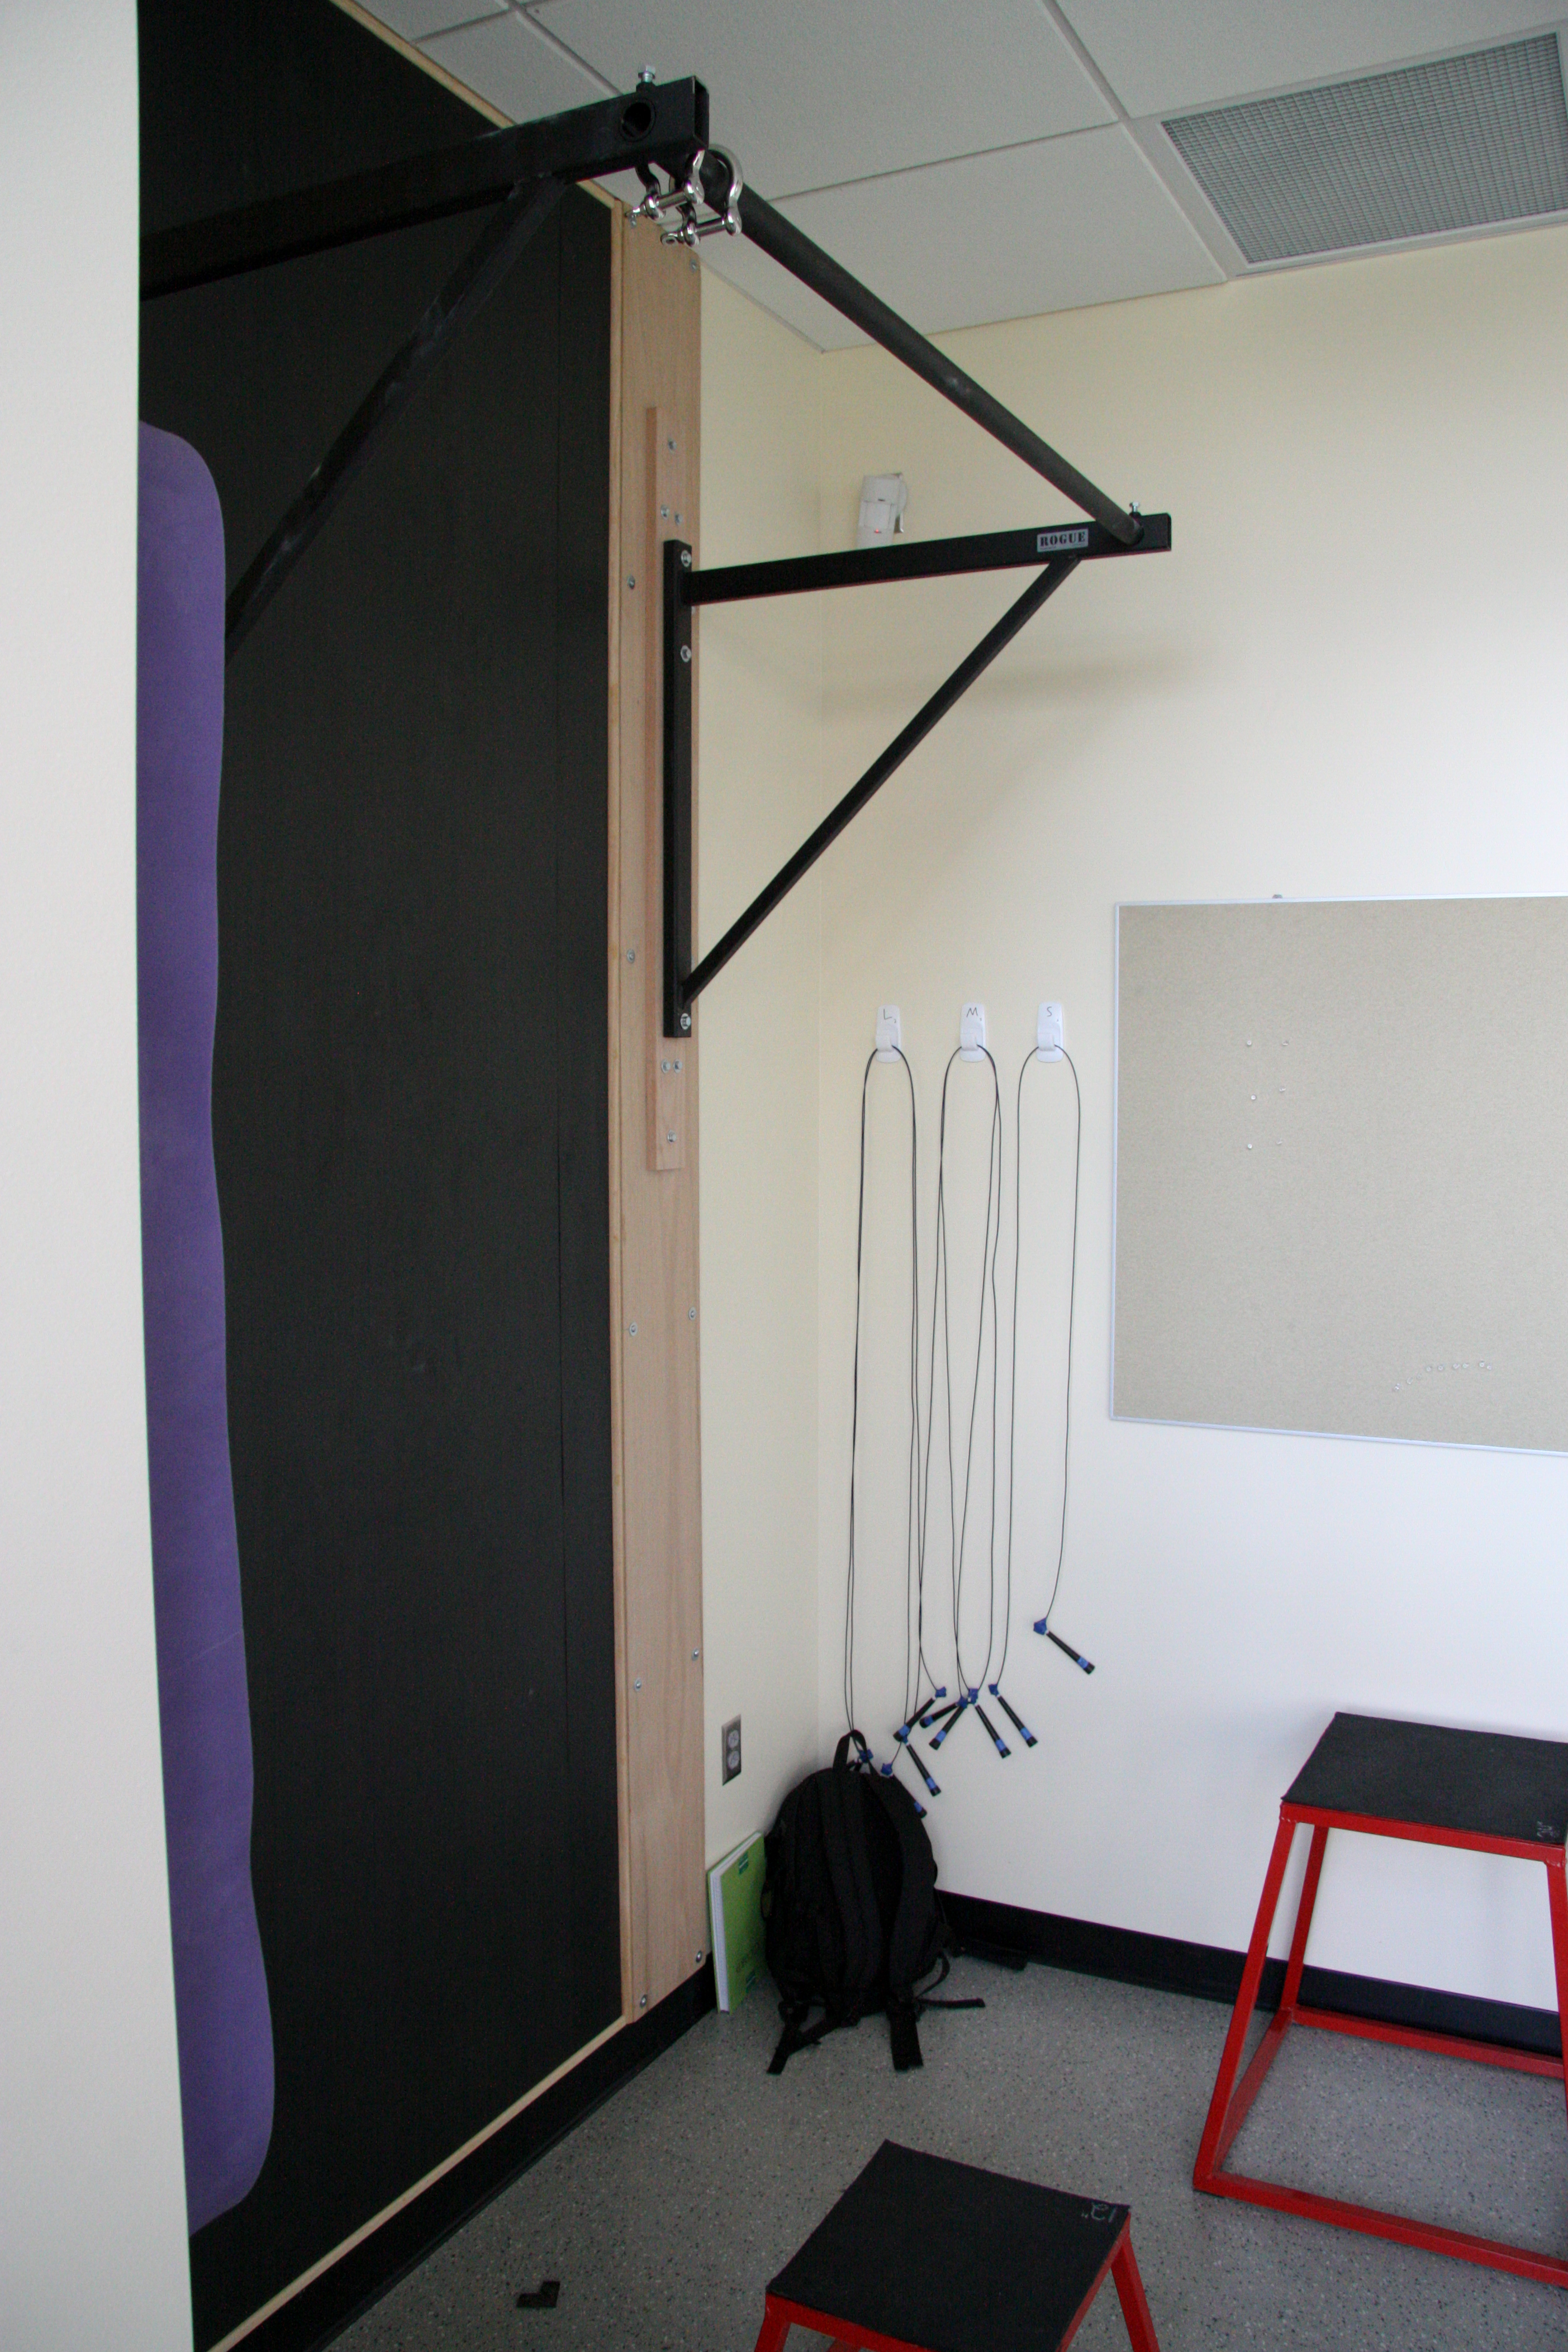 Pullup bar, speed ropes, and rubberbands